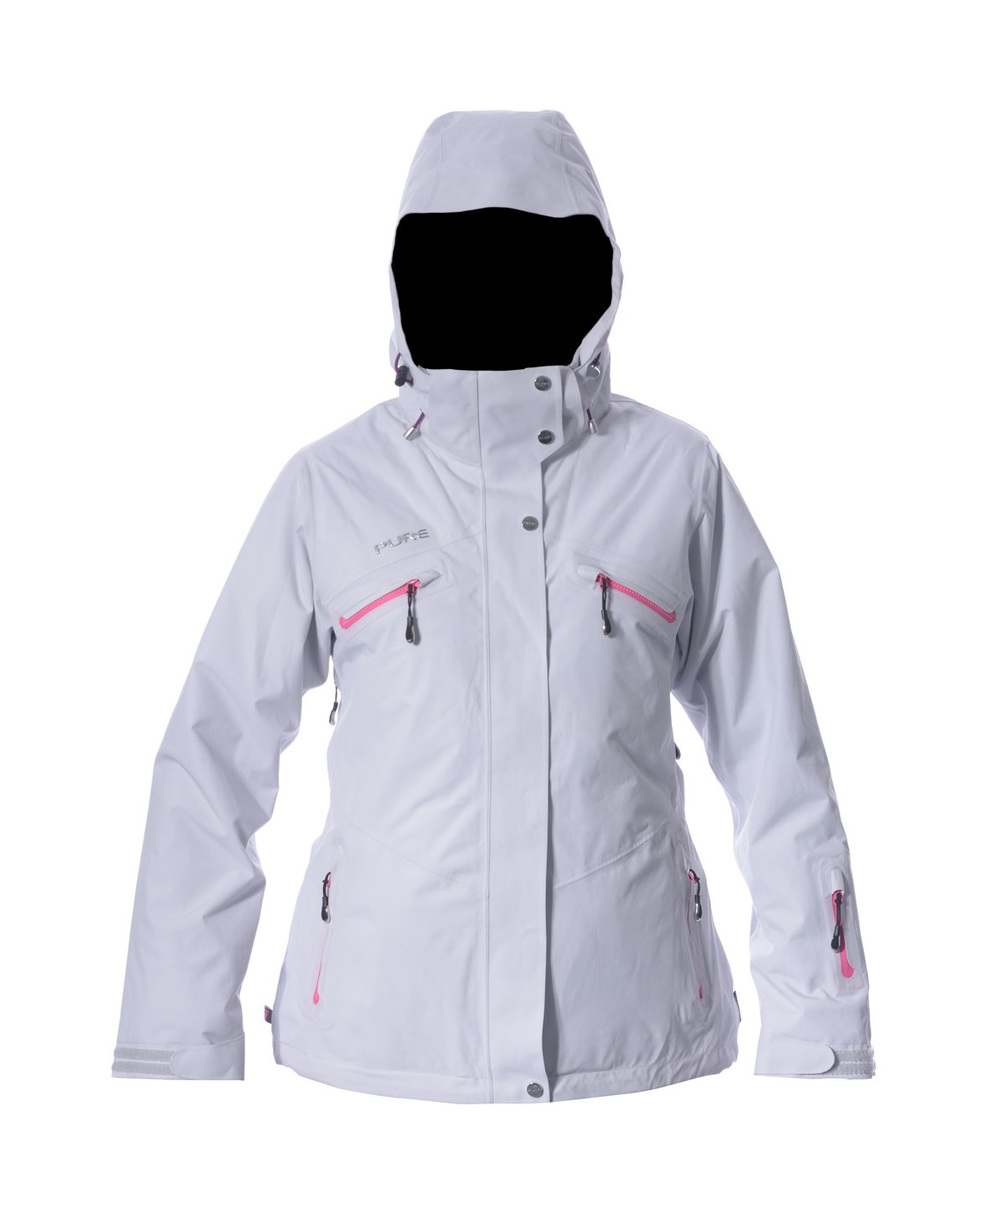 Cortina Women's Jacket - Silver